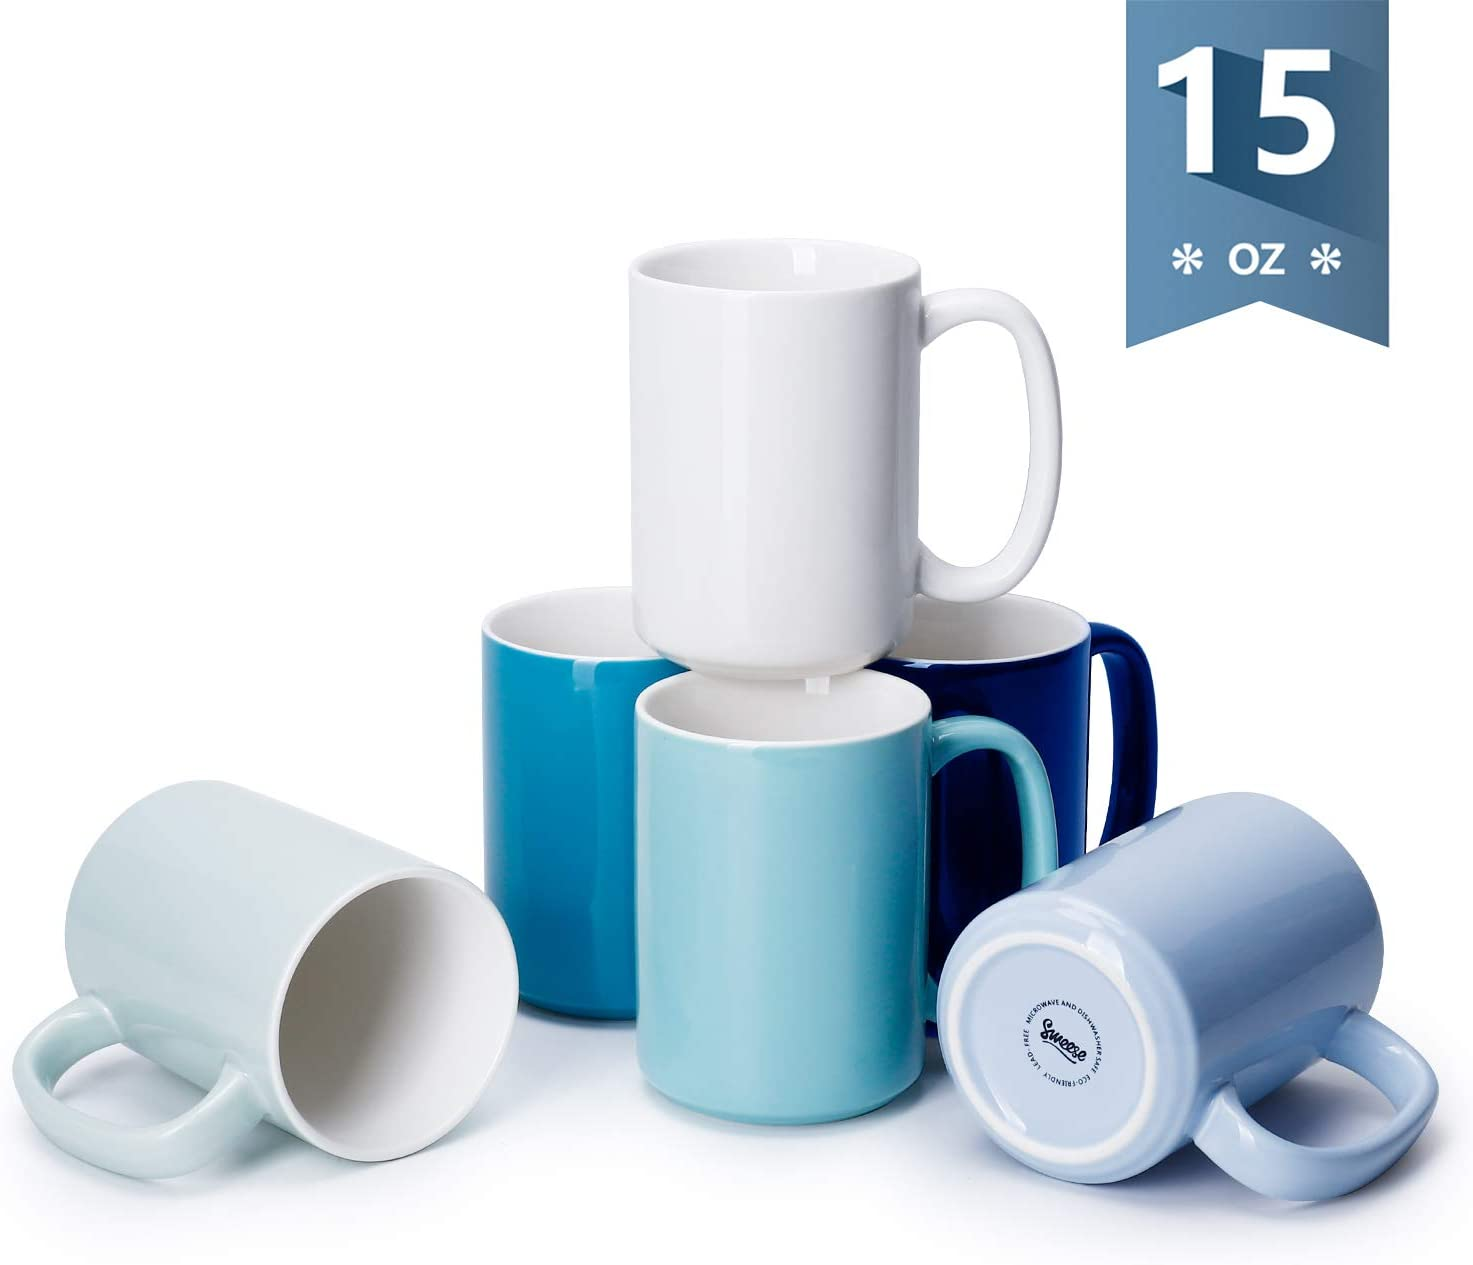 Sweese 608.003 Porcelain Mugs Set, 15 Ounce Large Handle Mugs, Set of 6, Cool Assorted colors